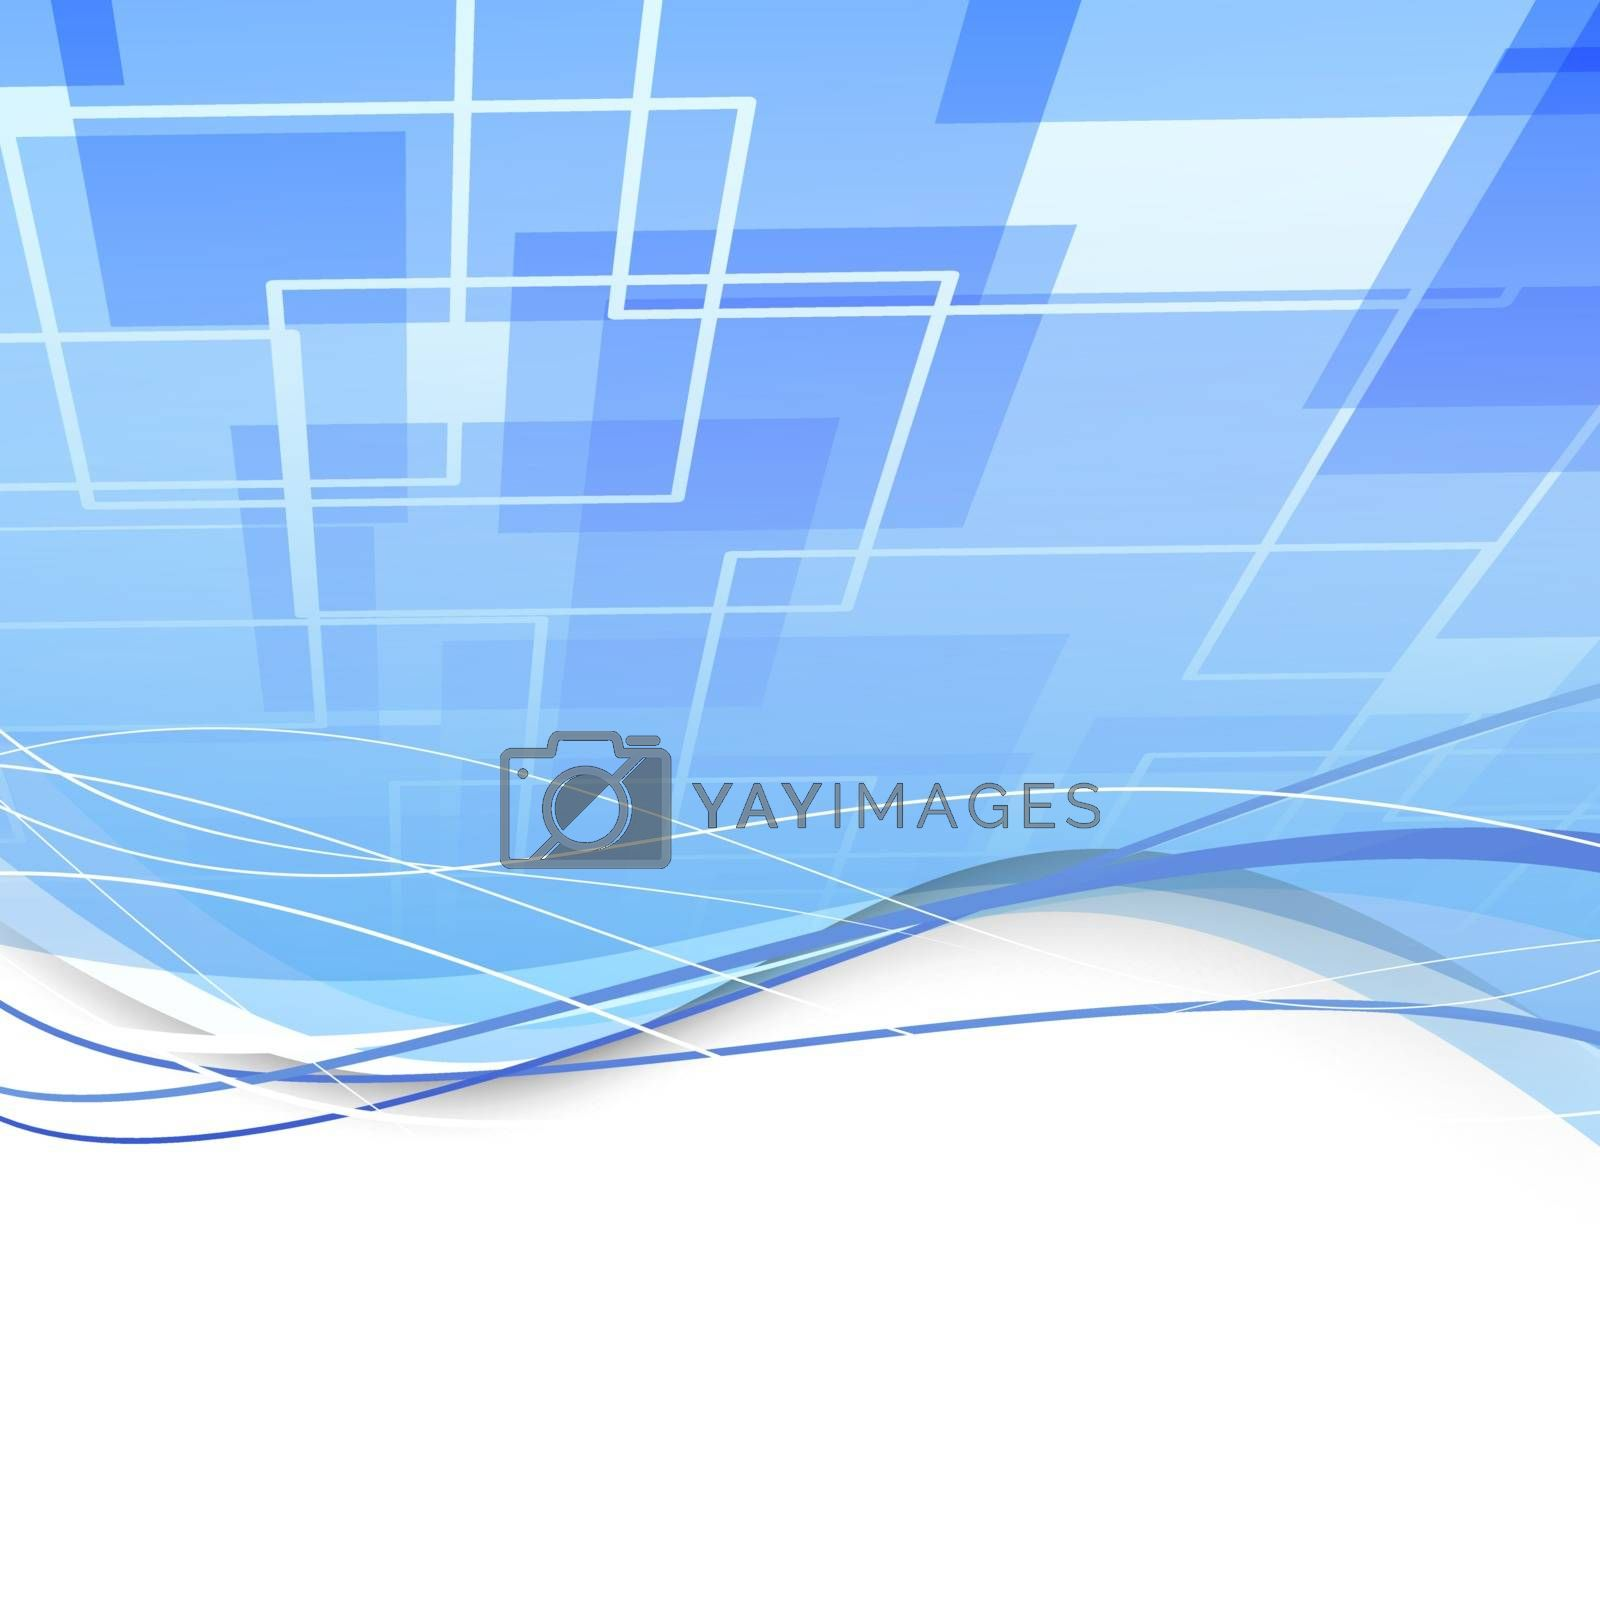 Vector illustration with a blue background.